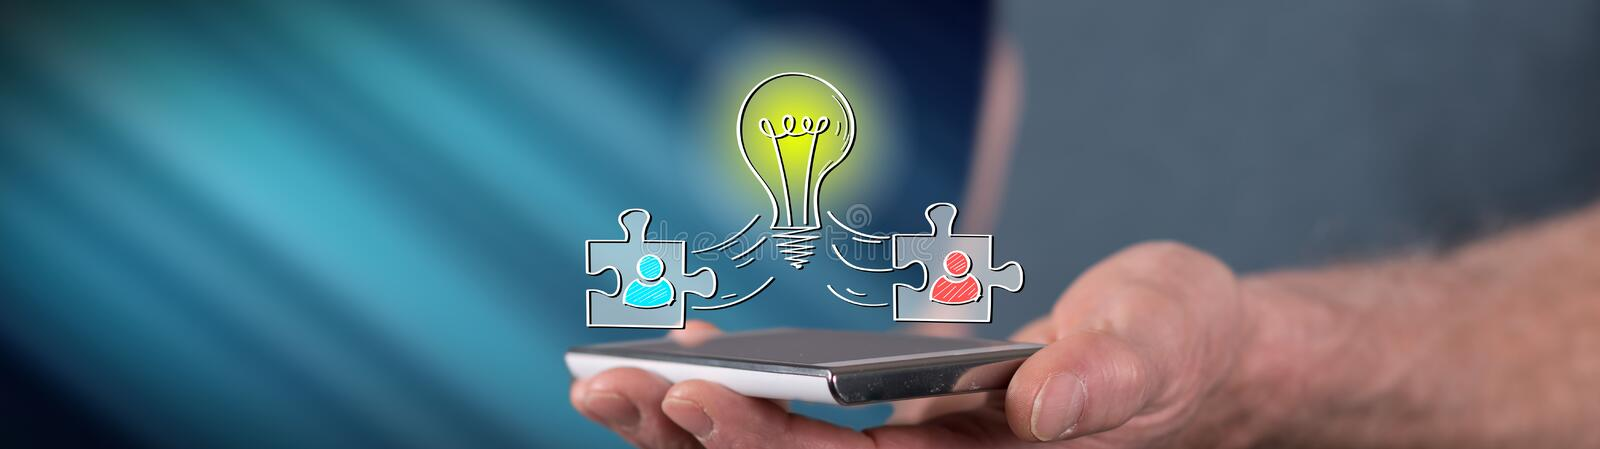 Concept of teamwork idea. Teamwork idea concept above a smartphone held by a man royalty free stock photography